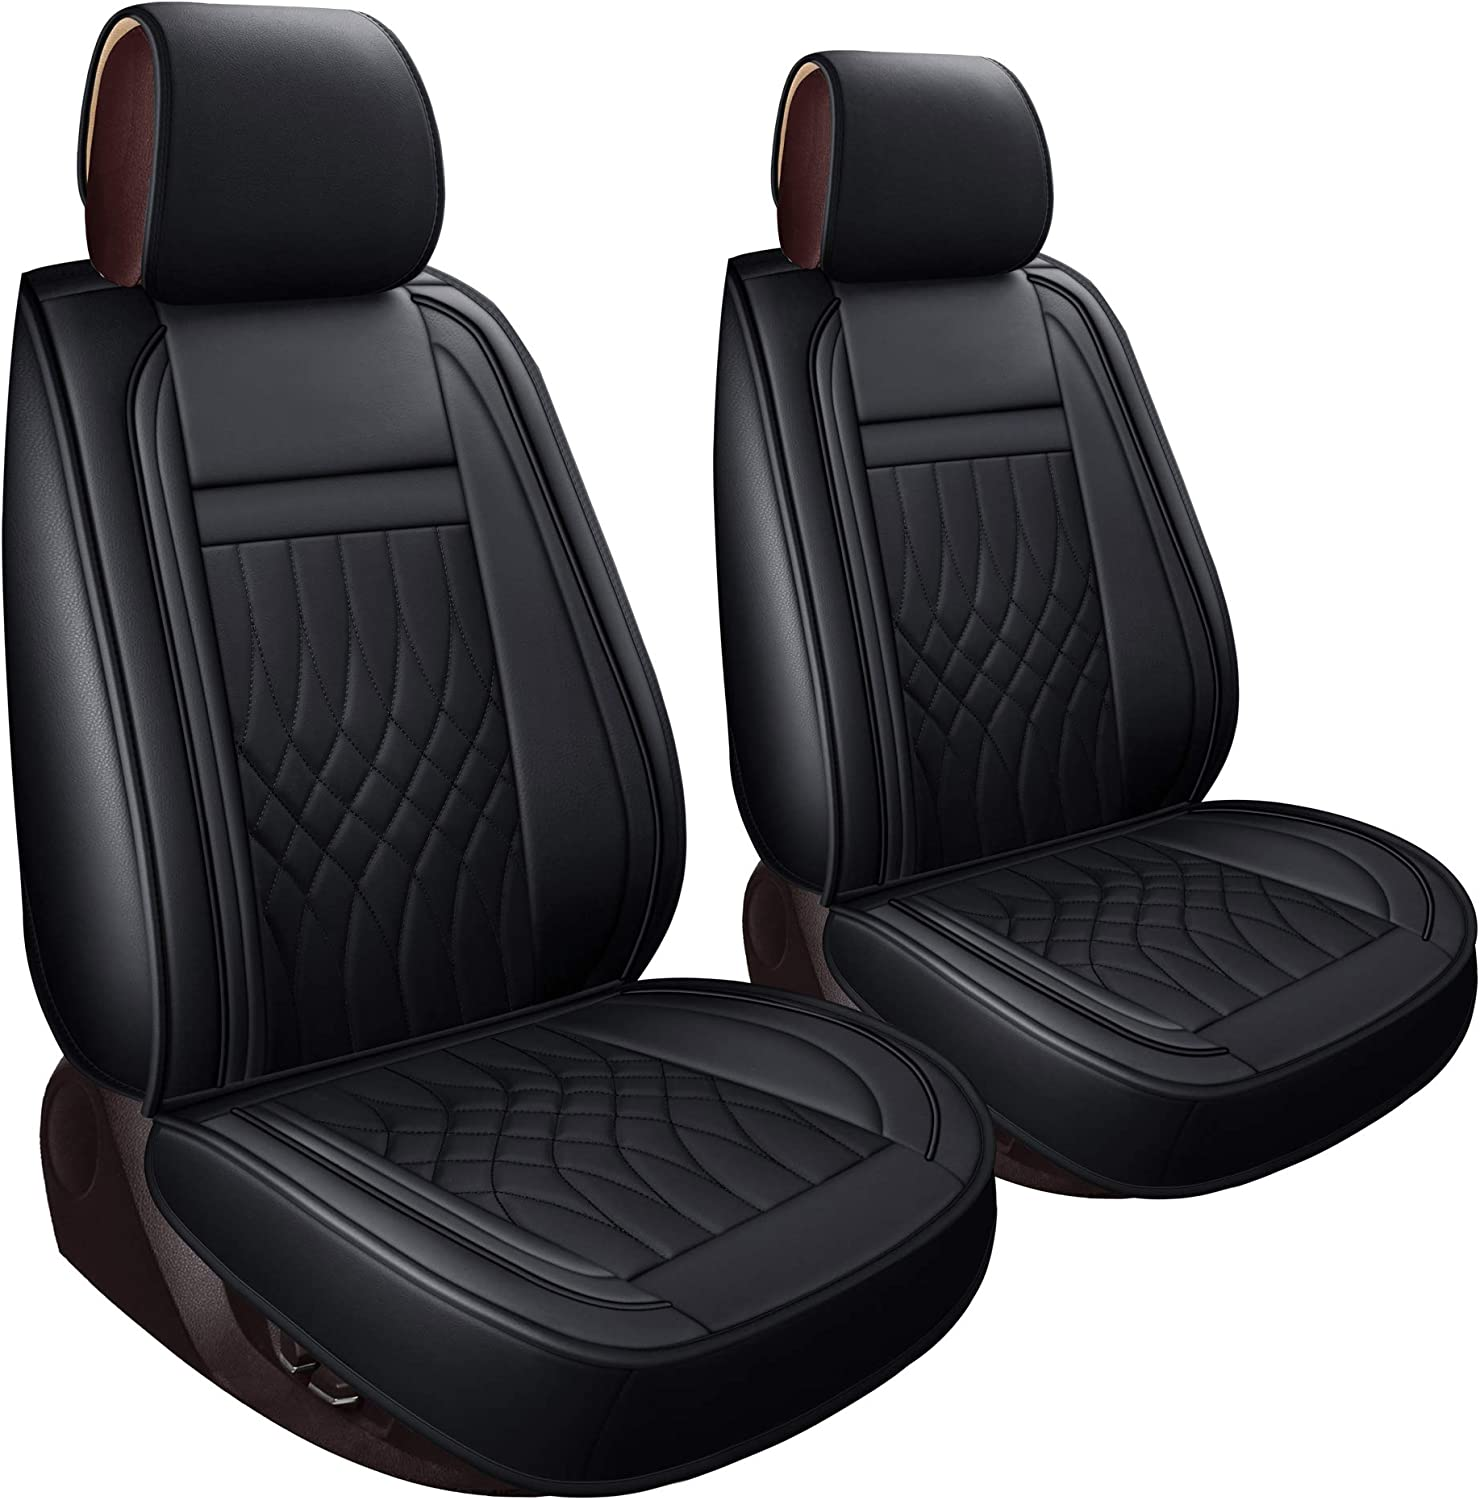 LUCKYMAN CLUB Truck Seat Covers fit for 2009-2020 Ford F150 Crew Cab and 2011-2020 F250 F350 F450 Crew Cab with Waterproof Faux Leather Black /& Blue-Full Set